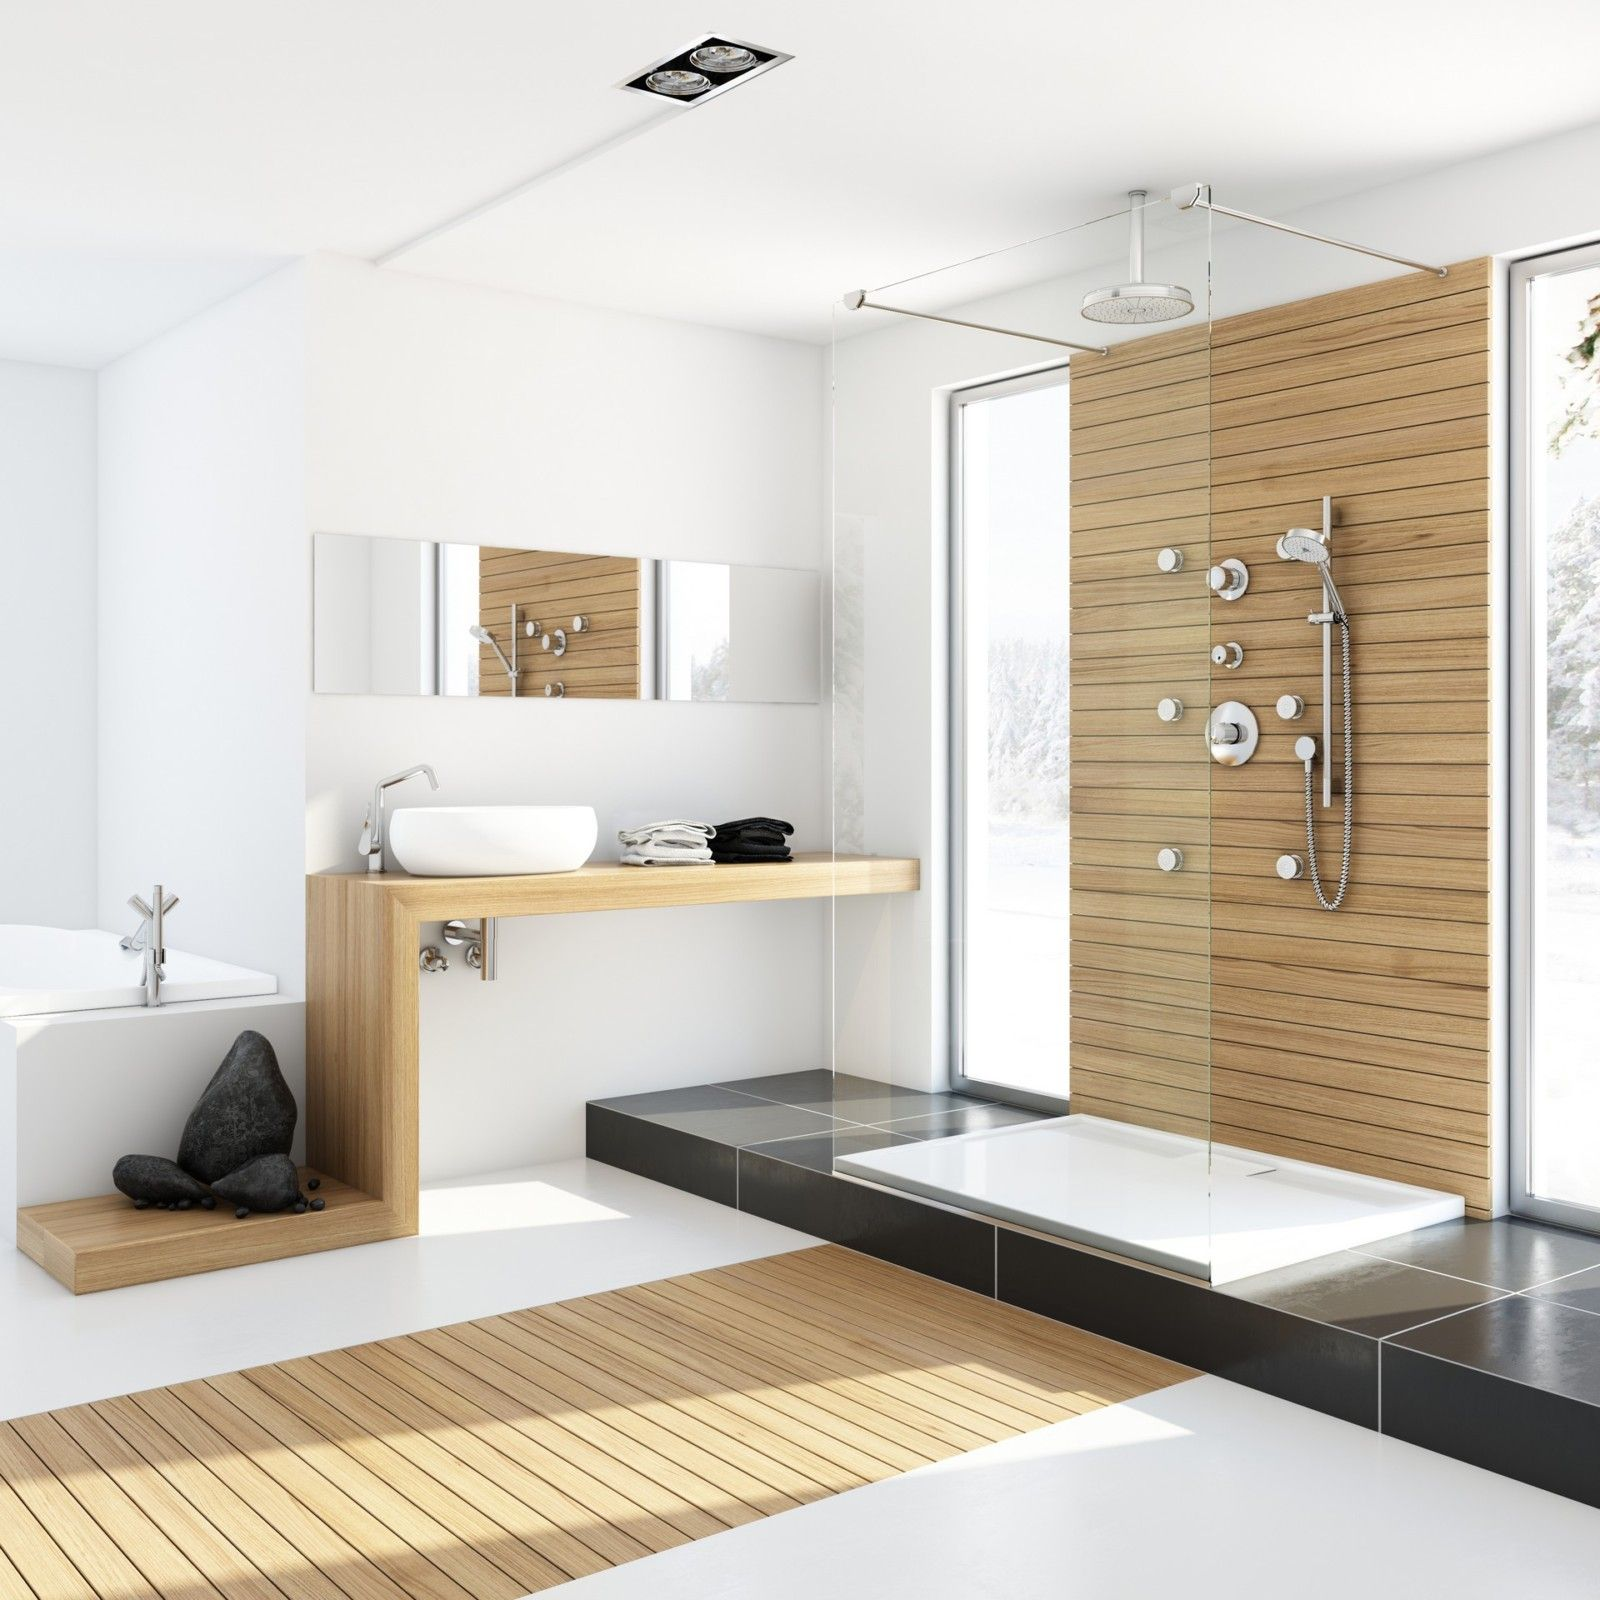 Basement Bathroom Tile Design Ideas